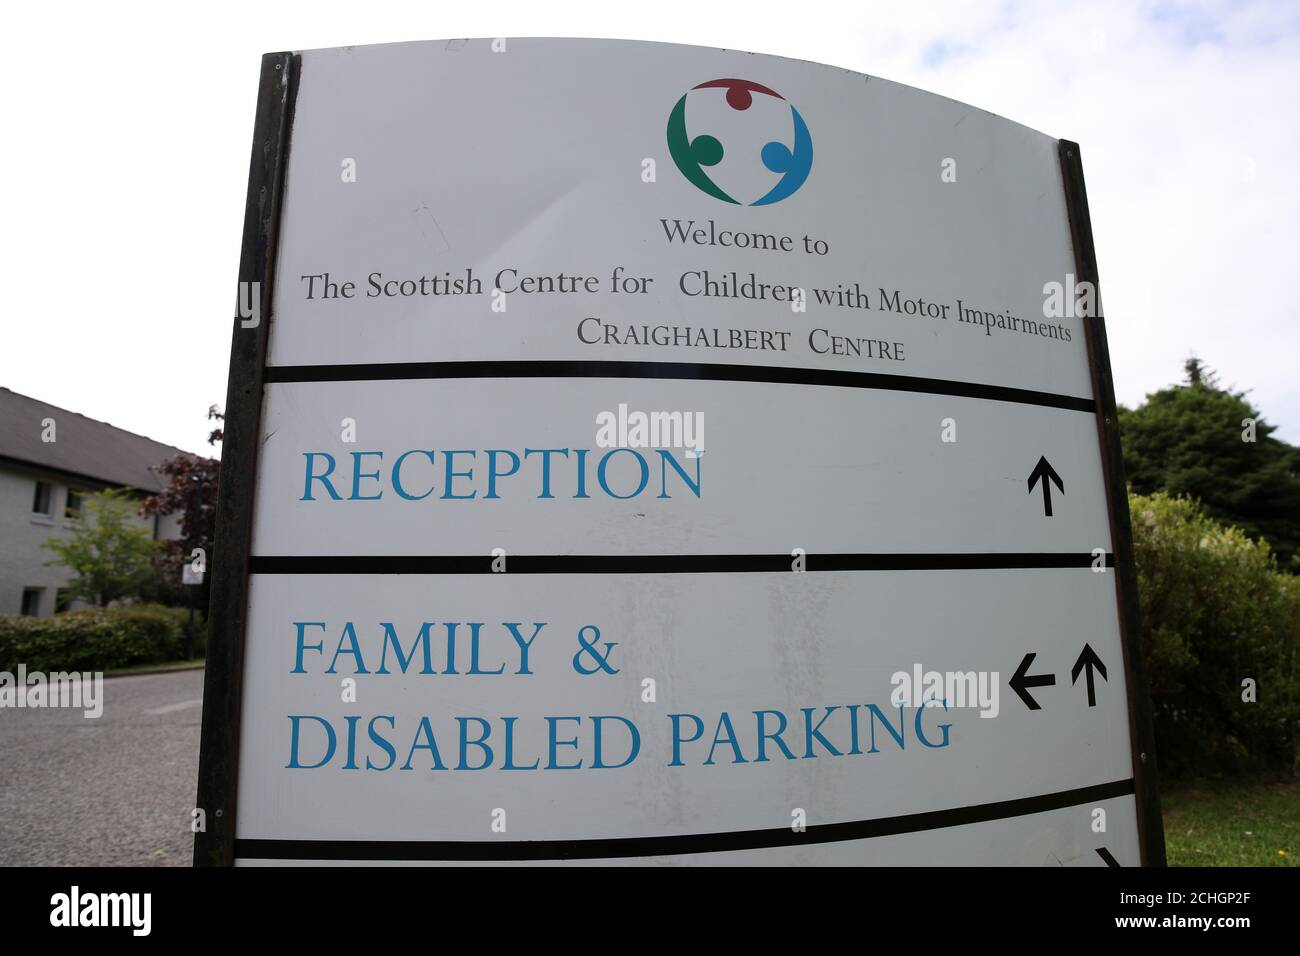 A general view of the Craighalbert Centre. Coronavirus adaptations have been installed at the Scottish Centre for Children with Motor Impairments, Craighalbert Centre, Cumbernauld, as Scotland continues gradually lifting coronavirus lockdown measures. Stock Photo